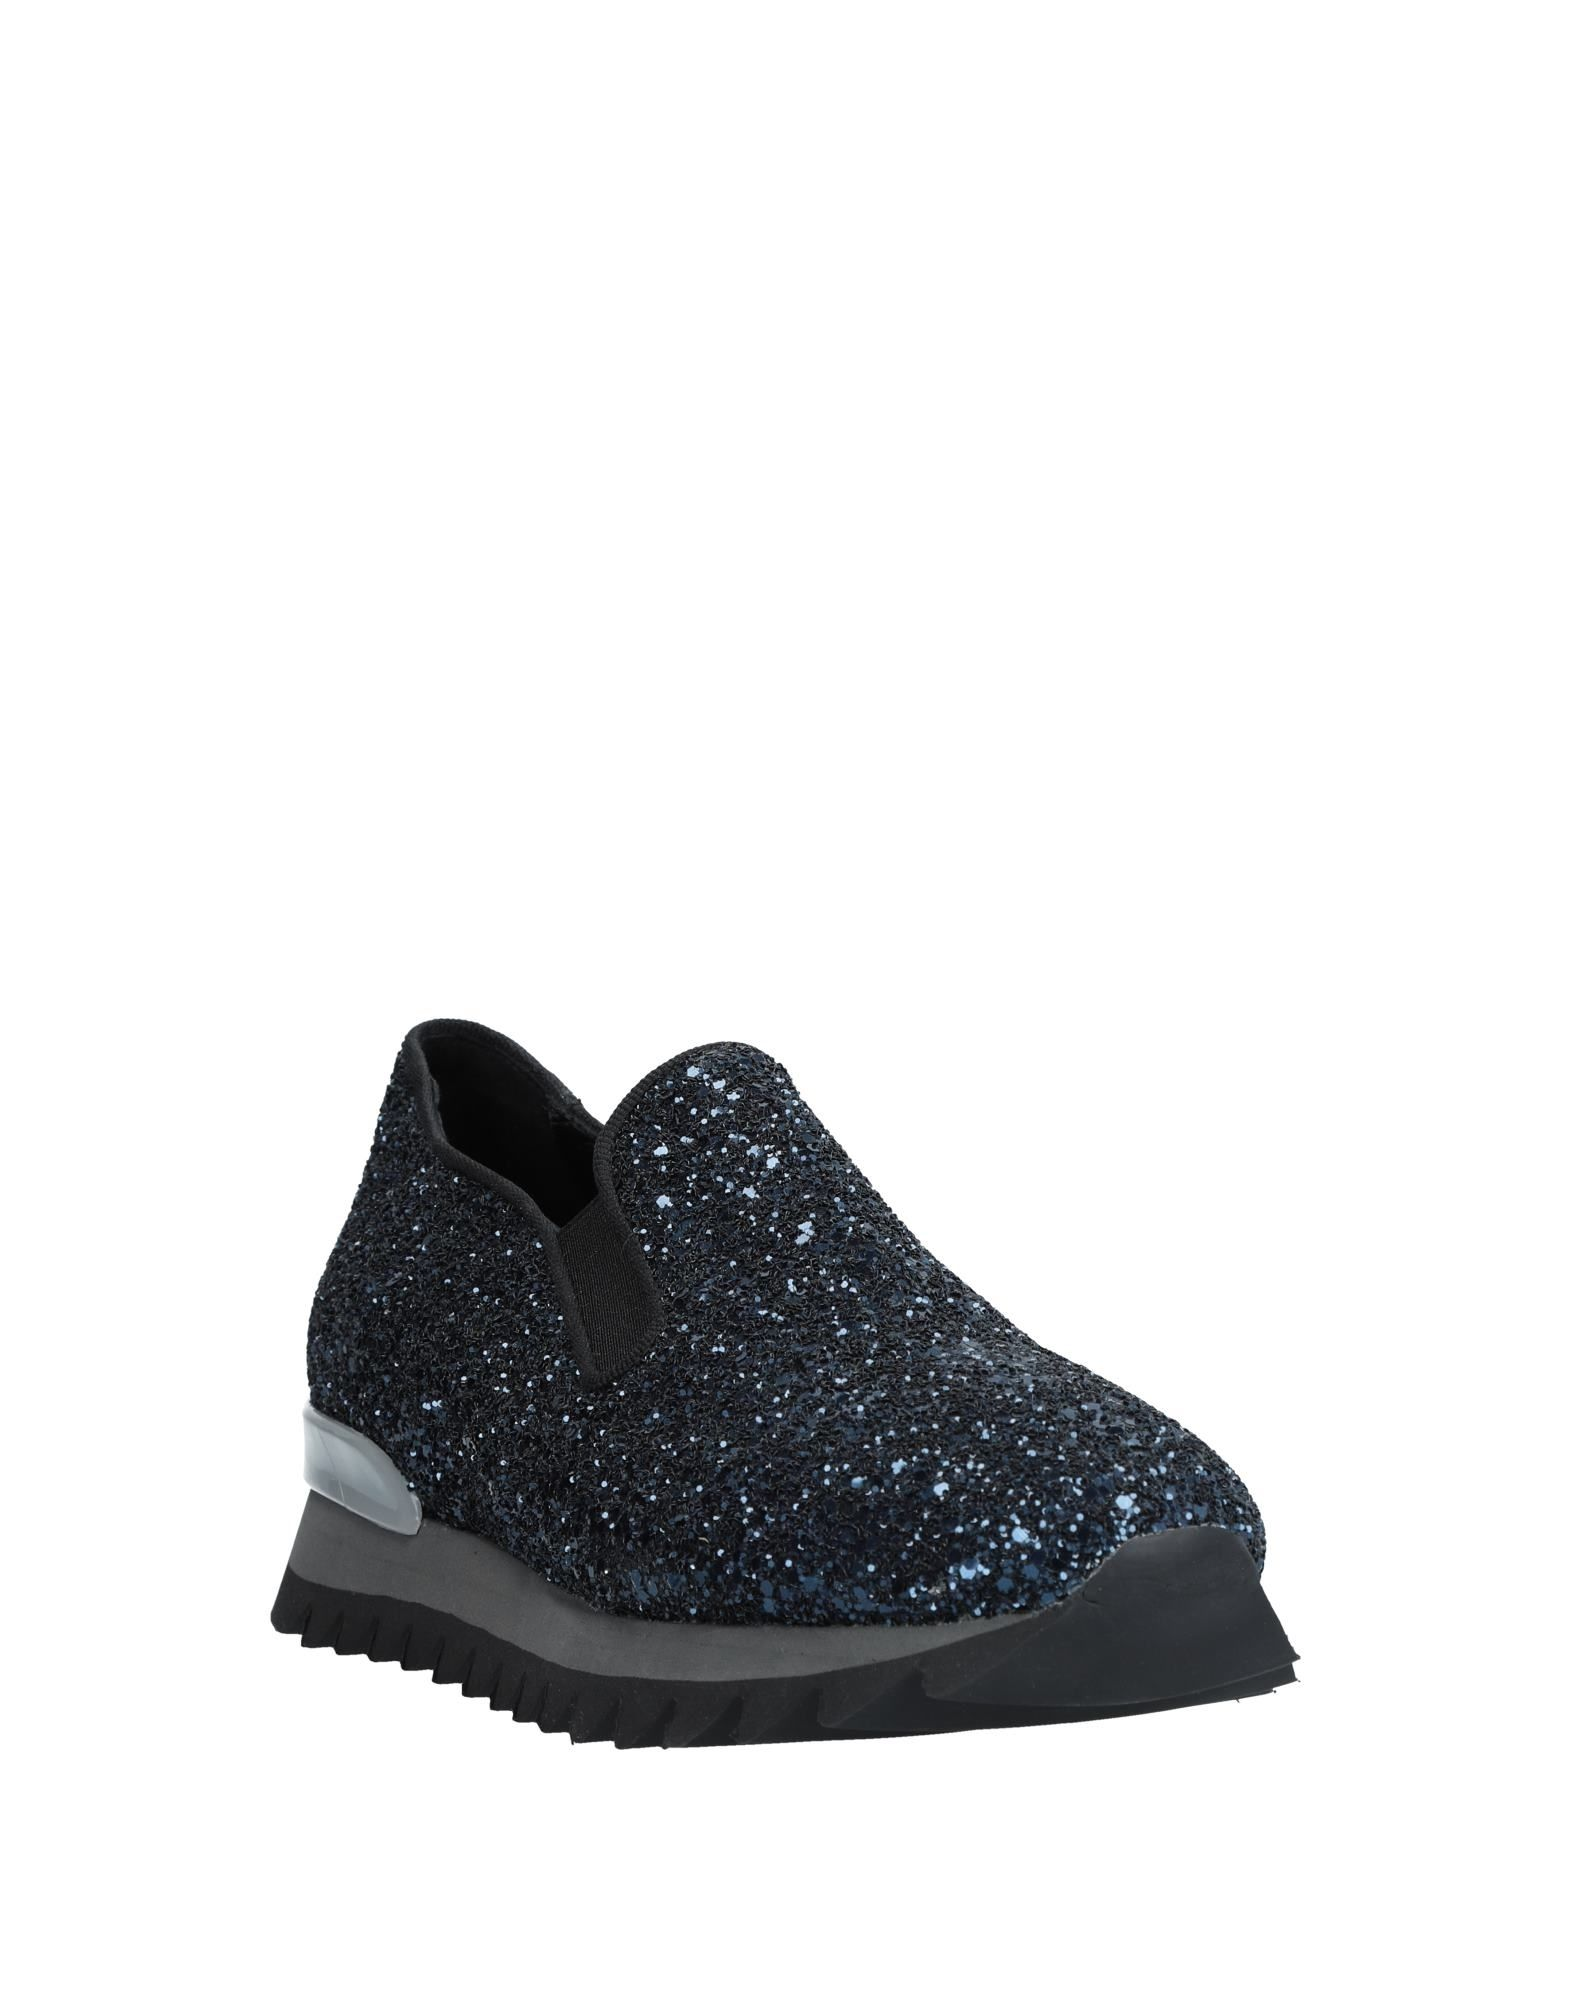 Le Ble Sneakers - Women Women Women Le Ble Sneakers online on  Canada - 11537435NC 377802